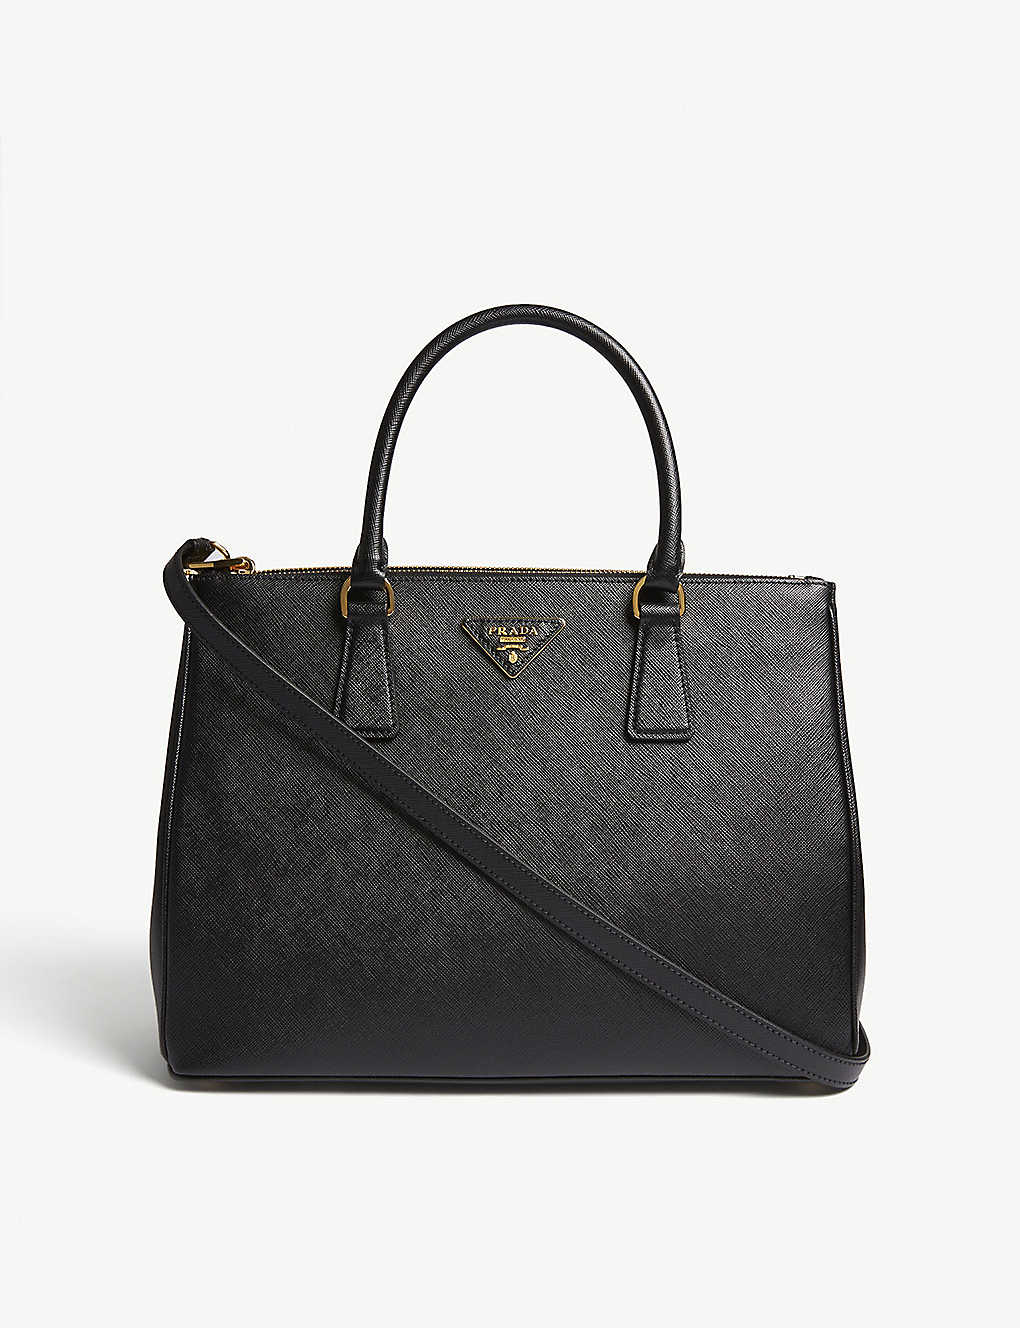 271231fb4dc0 PRADA - Galleria Saffiano large leather tote | Selfridges.com